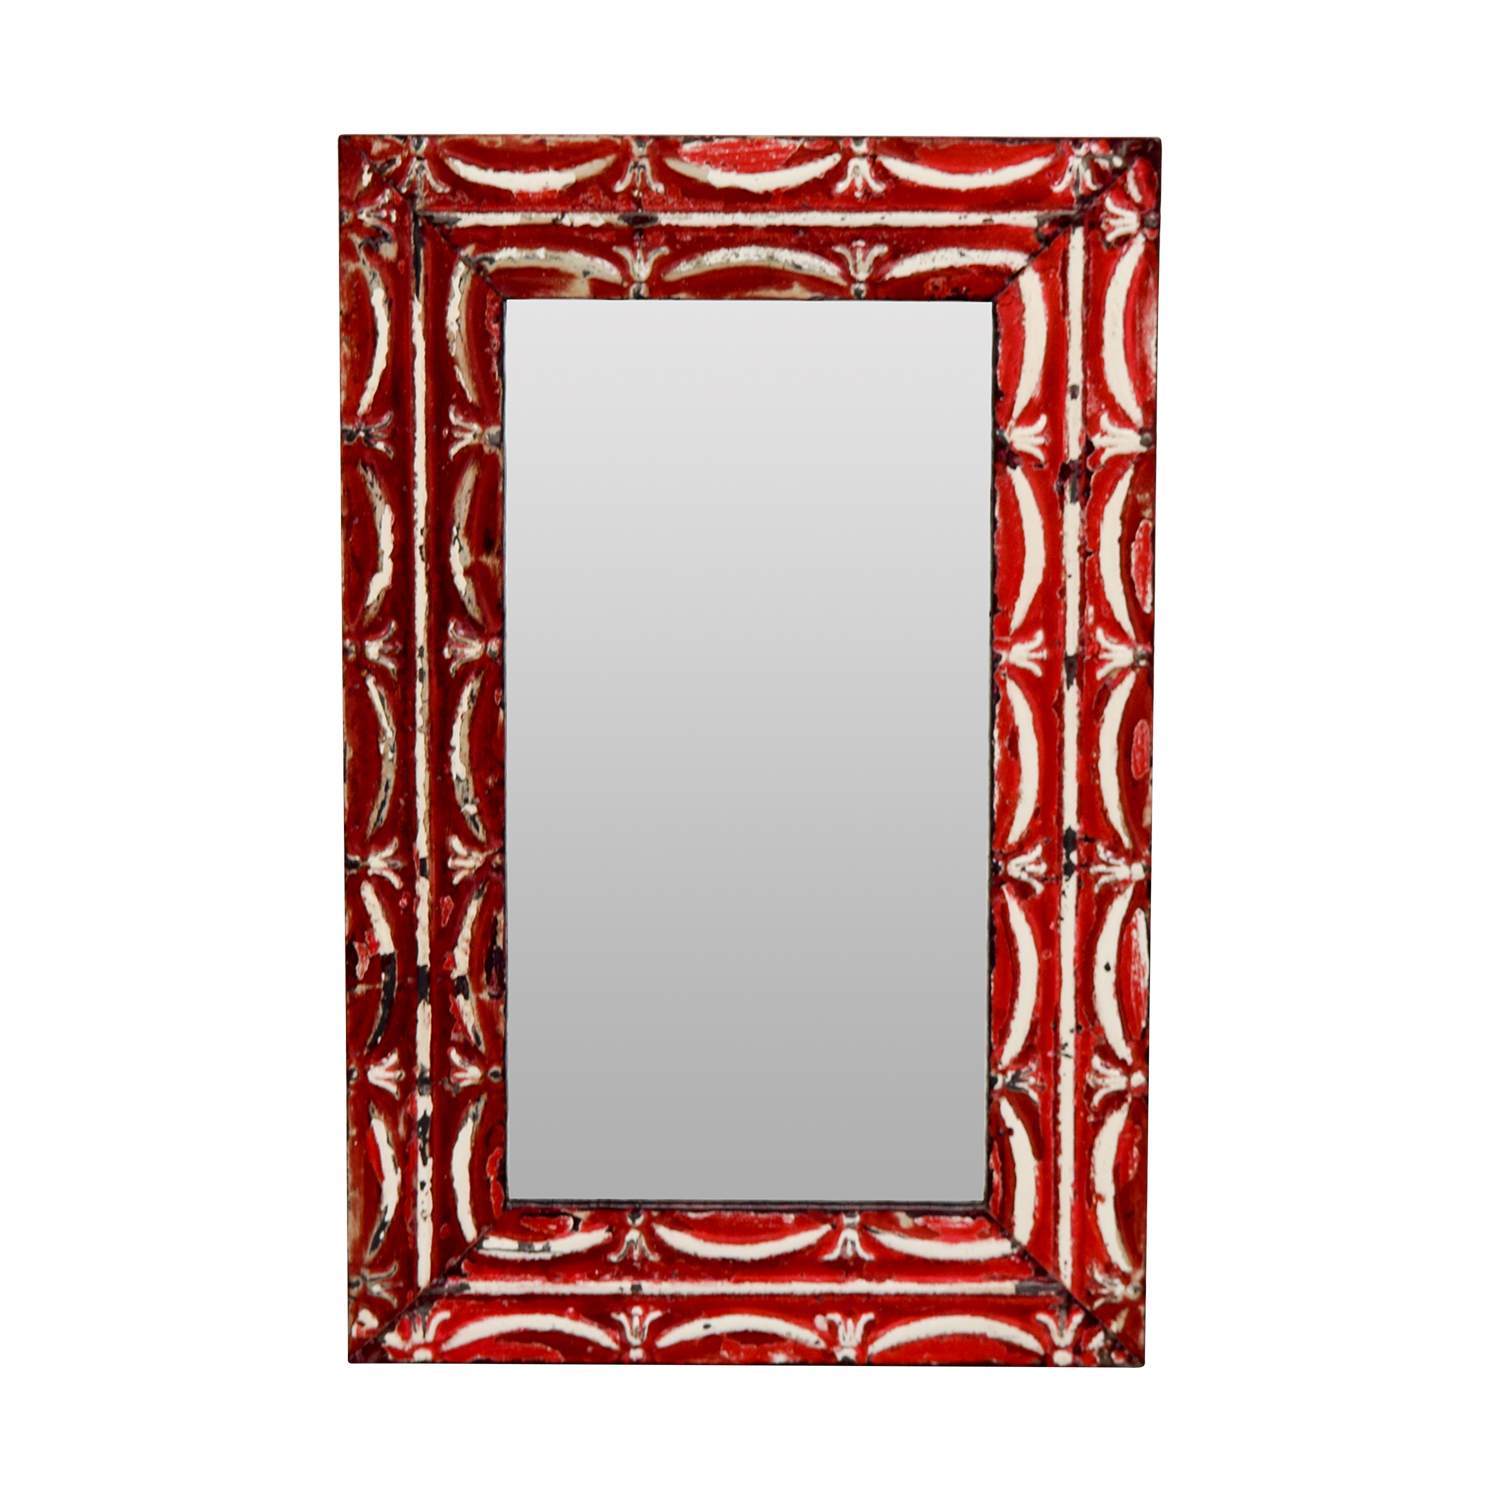 buy Olde Good Things Antique Red Tin Frame Mirror Olde Goode Things